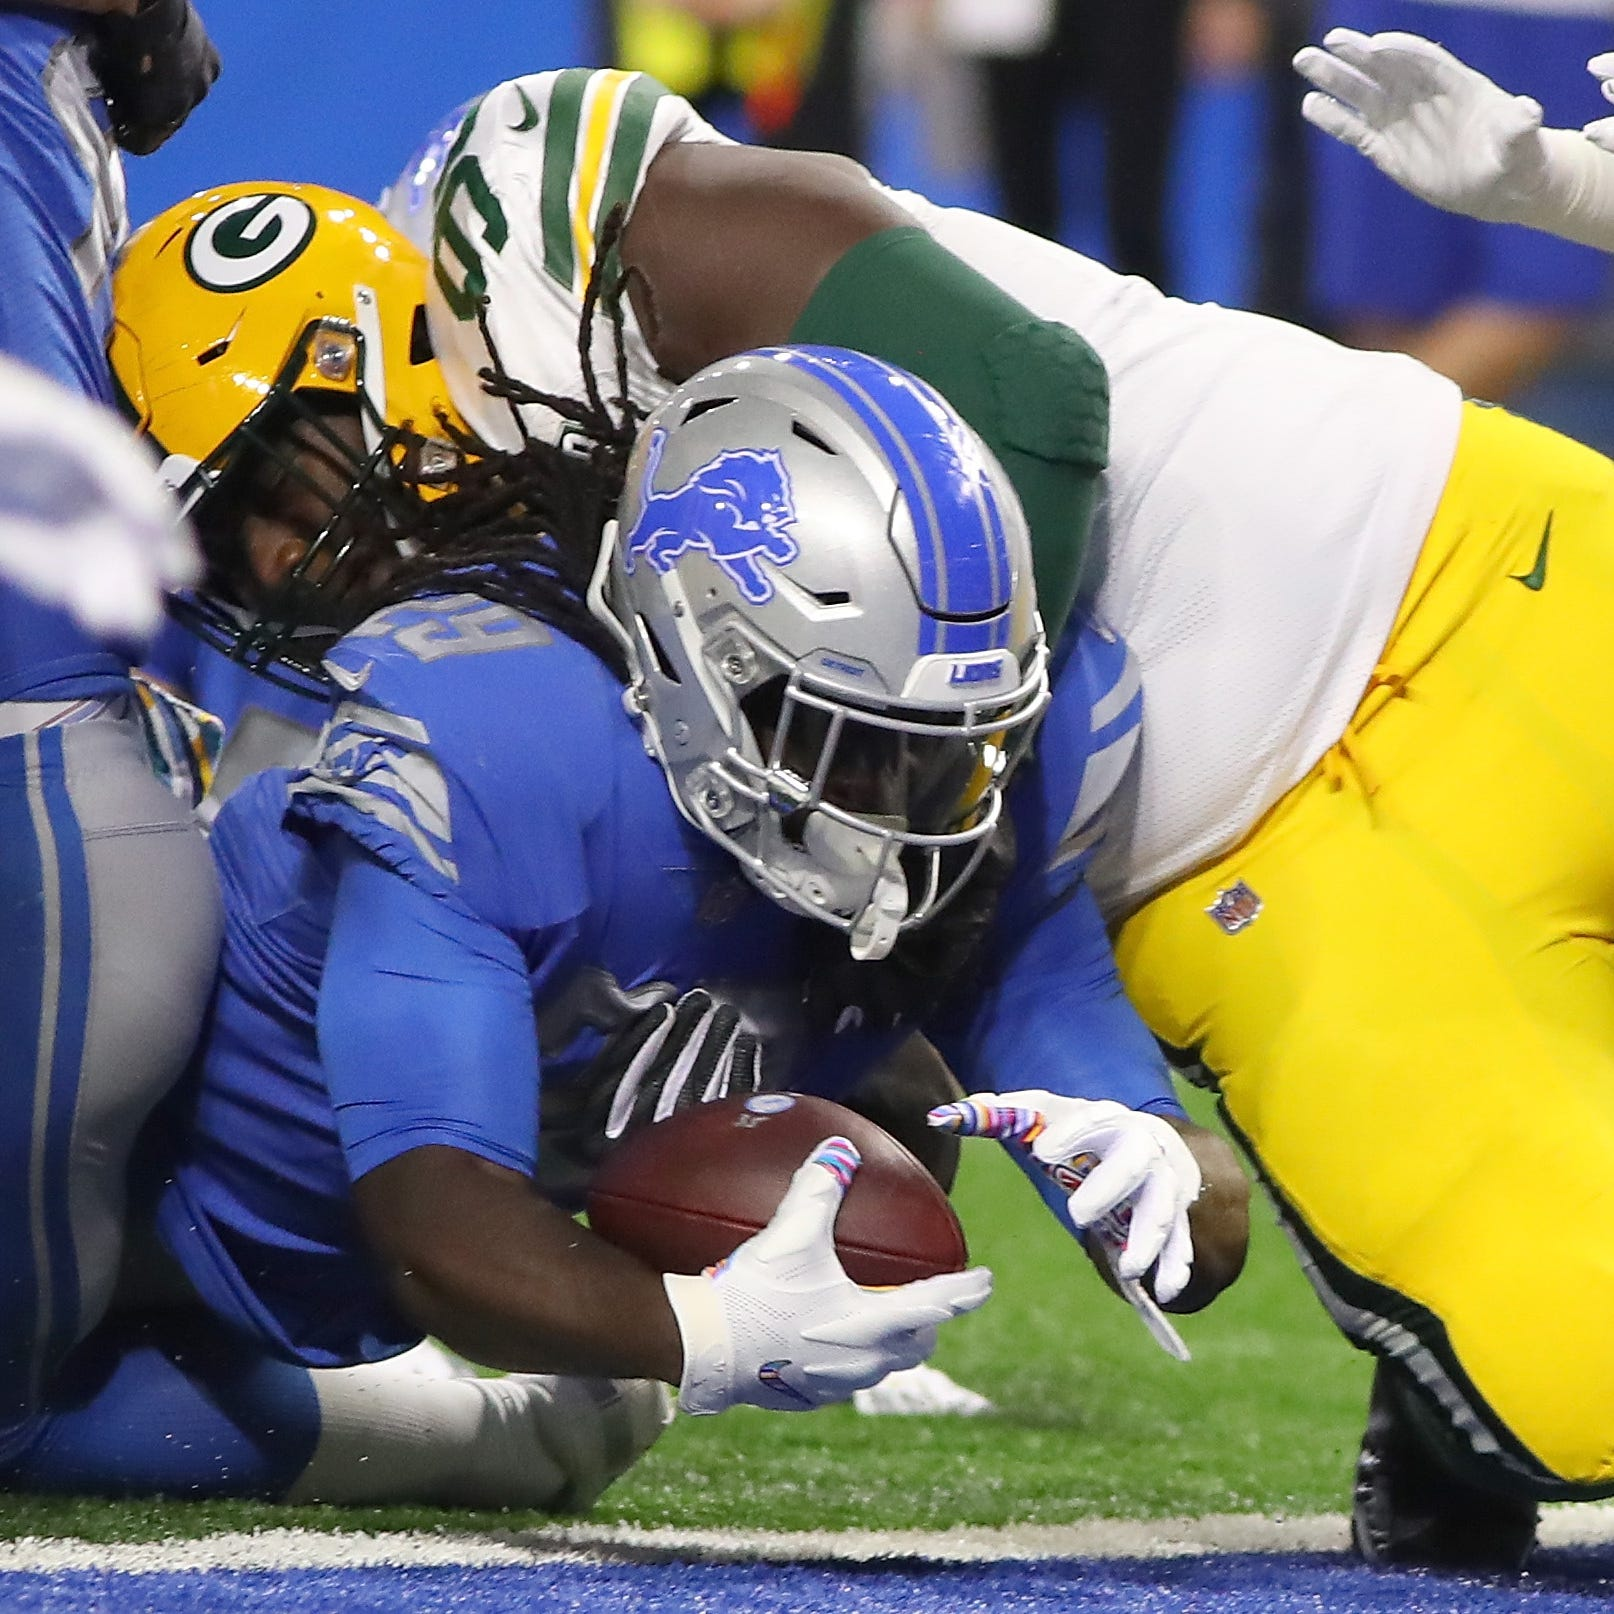 LeGarrette Blount: Season 'not the best so far,' still plenty to play